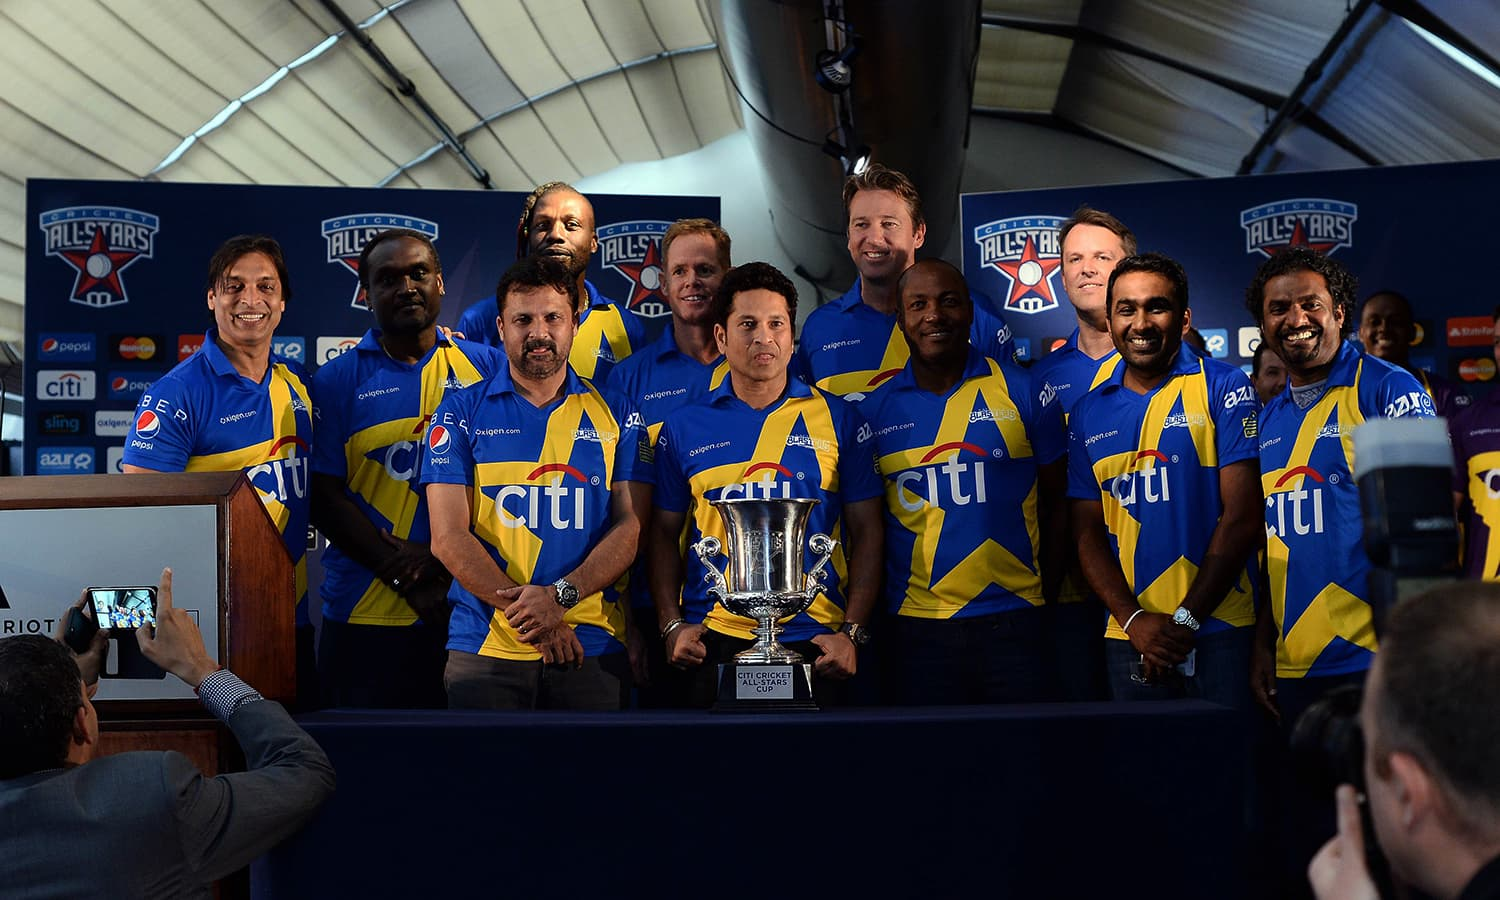 """Retired Indian cricketer Sachin Tendulkar (C) and his team pose during a press conference in New York on November 5, 2015. Tenduklar and Australia's Shane Warne will lead a lineup of renowned cricket players from around the world in the inaugural """"Cricket All-Stars,"""" a three-game series to be played in Major League Baseball stadiums in New York , Houston and Los Angeles, to promote cricket the US. AFP PHOTO/JEWEL SAMAD"""